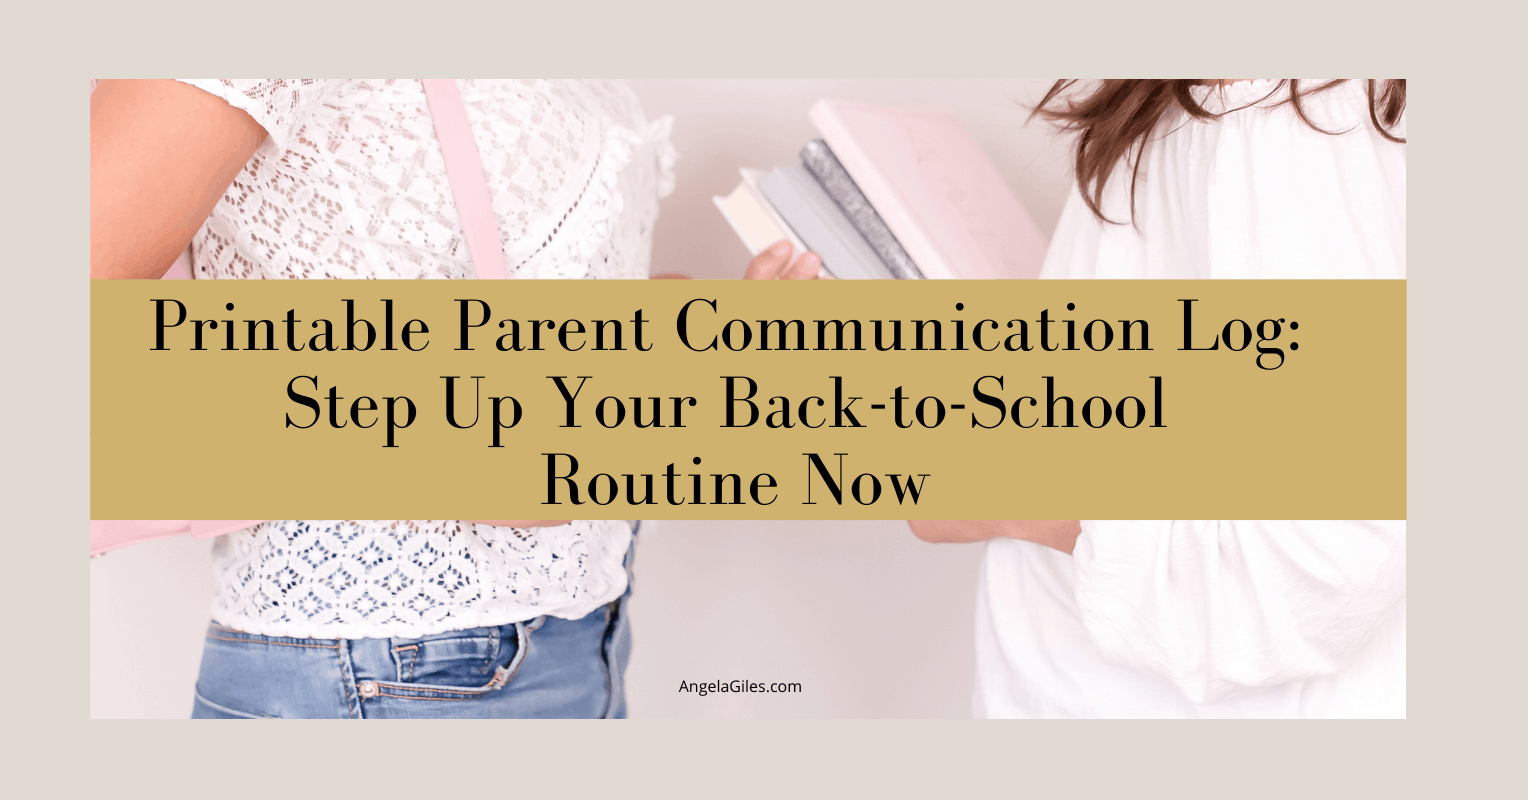 Printable Parent Communication Log: Step Up Your Back-to-School Routine Now